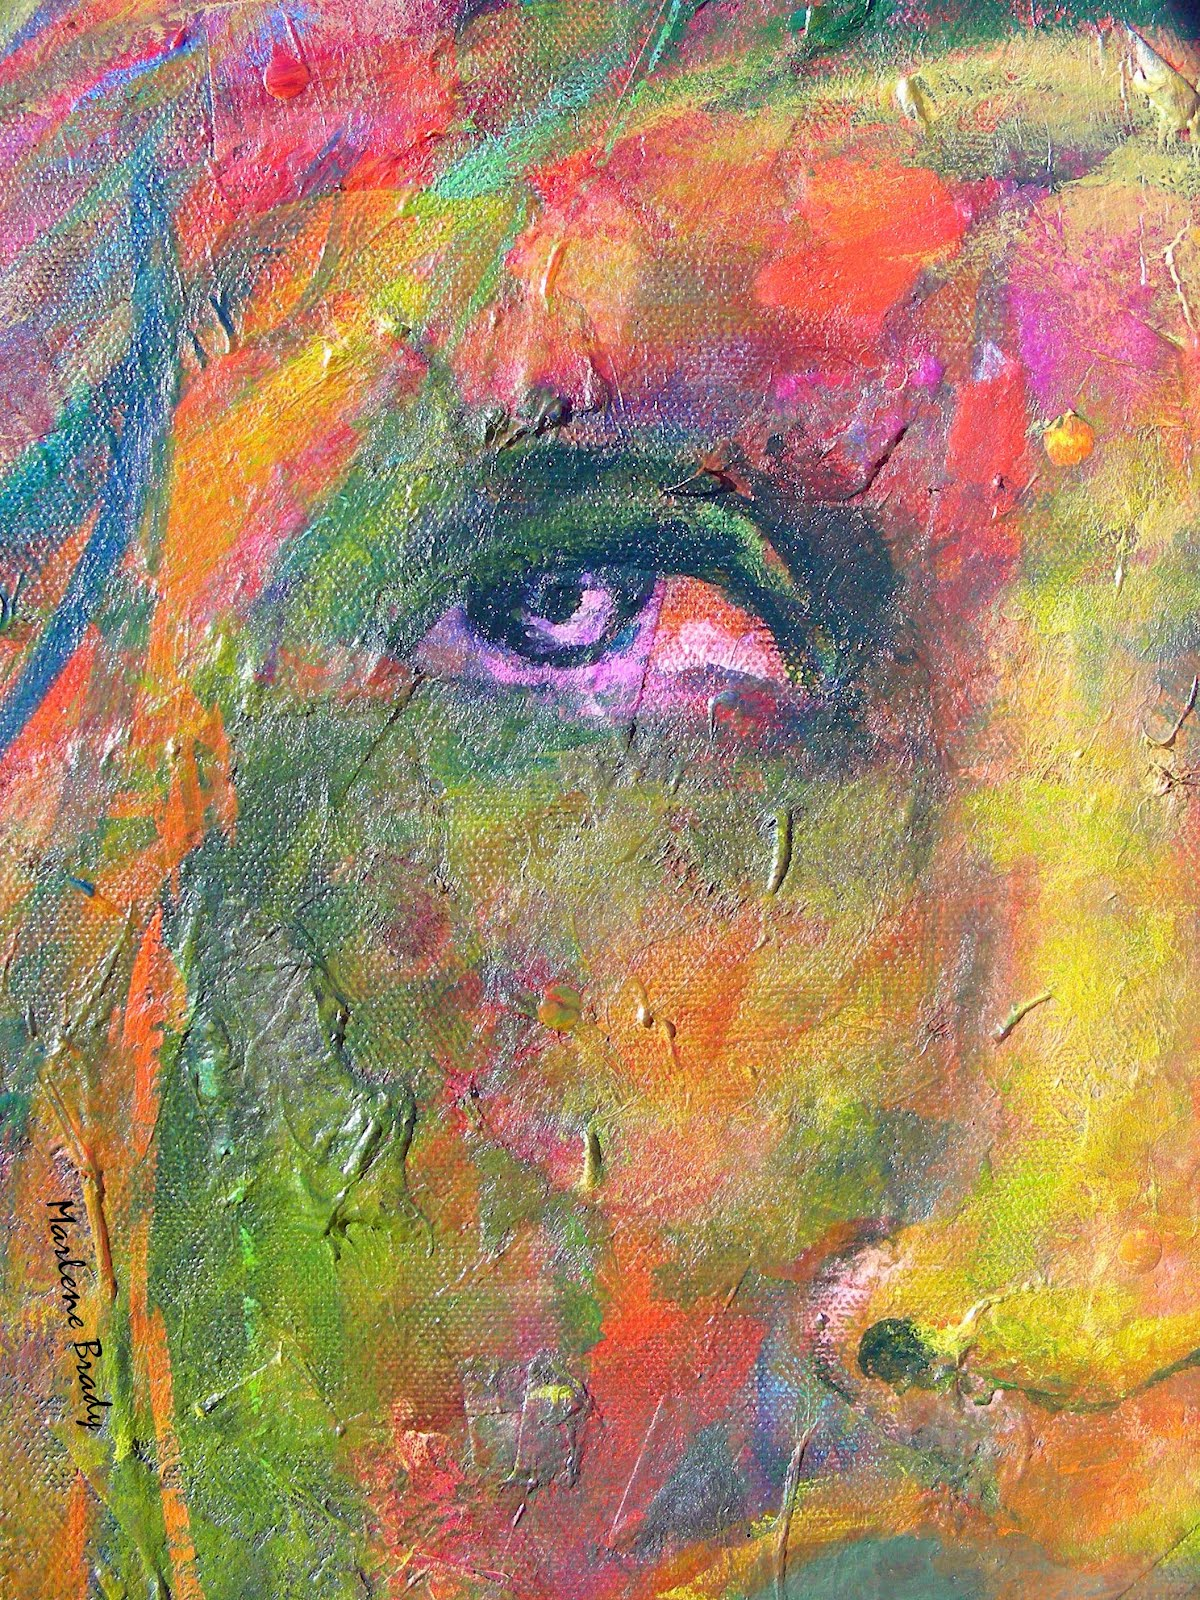 Marlene brady textured abstract face paintings for Textured acrylic abstract paintings